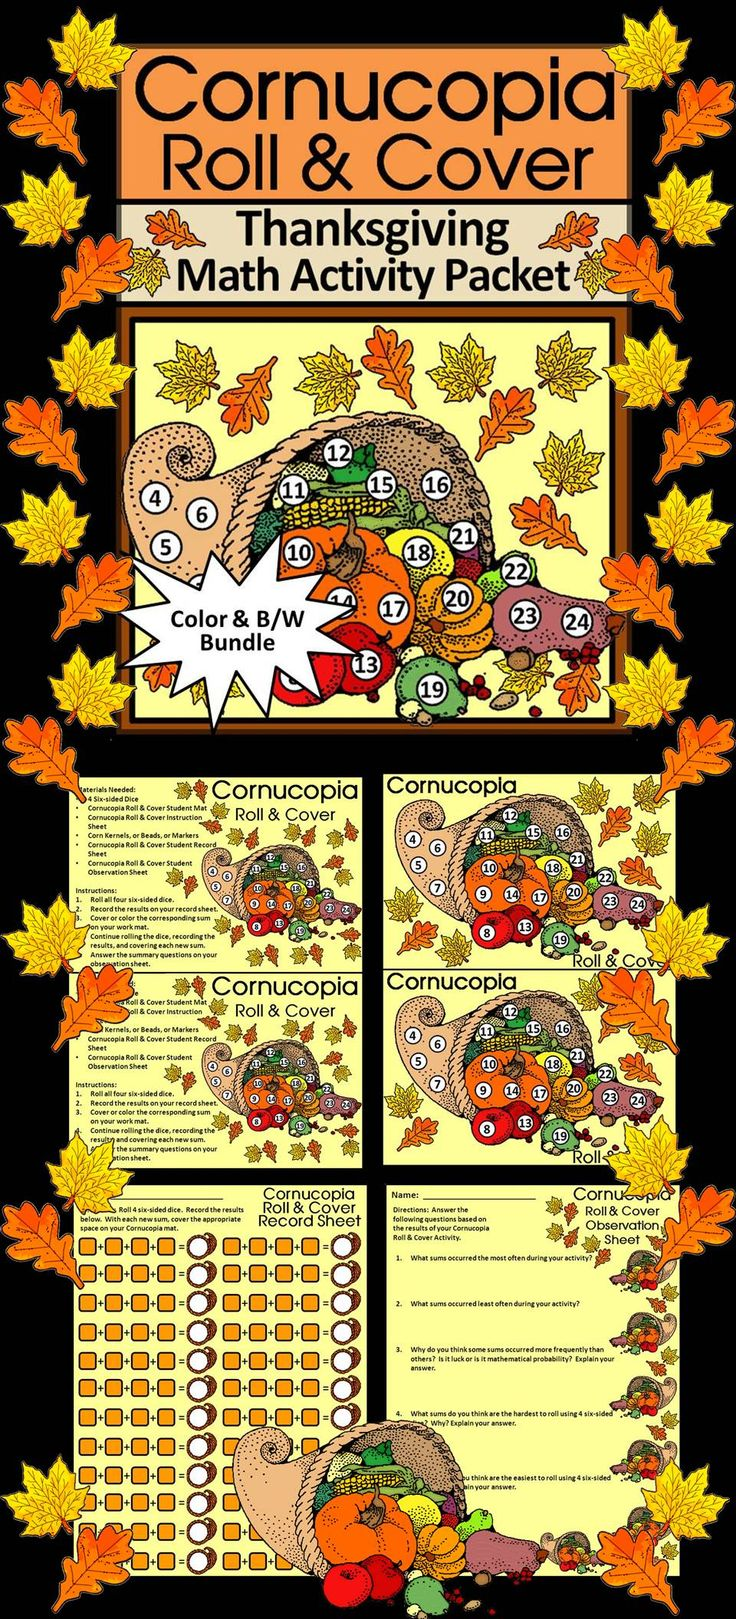 Cornucopia Roll & Cover Thanksgiving Math Activity: Gives your students a fun and festive way to practice addition in series in a hands-on way.  Contents Include: * Two Cornucopia Roll & Cover Thanksgiving Math Student Work Mats * Two Cornucopia Roll & Cover Thanksgiving Math Instruction Sets * Student Record Sheet * Student Observation Sheet  #Thanksgiving #Math #Cornucopia #Activities #Teacherspayteachers